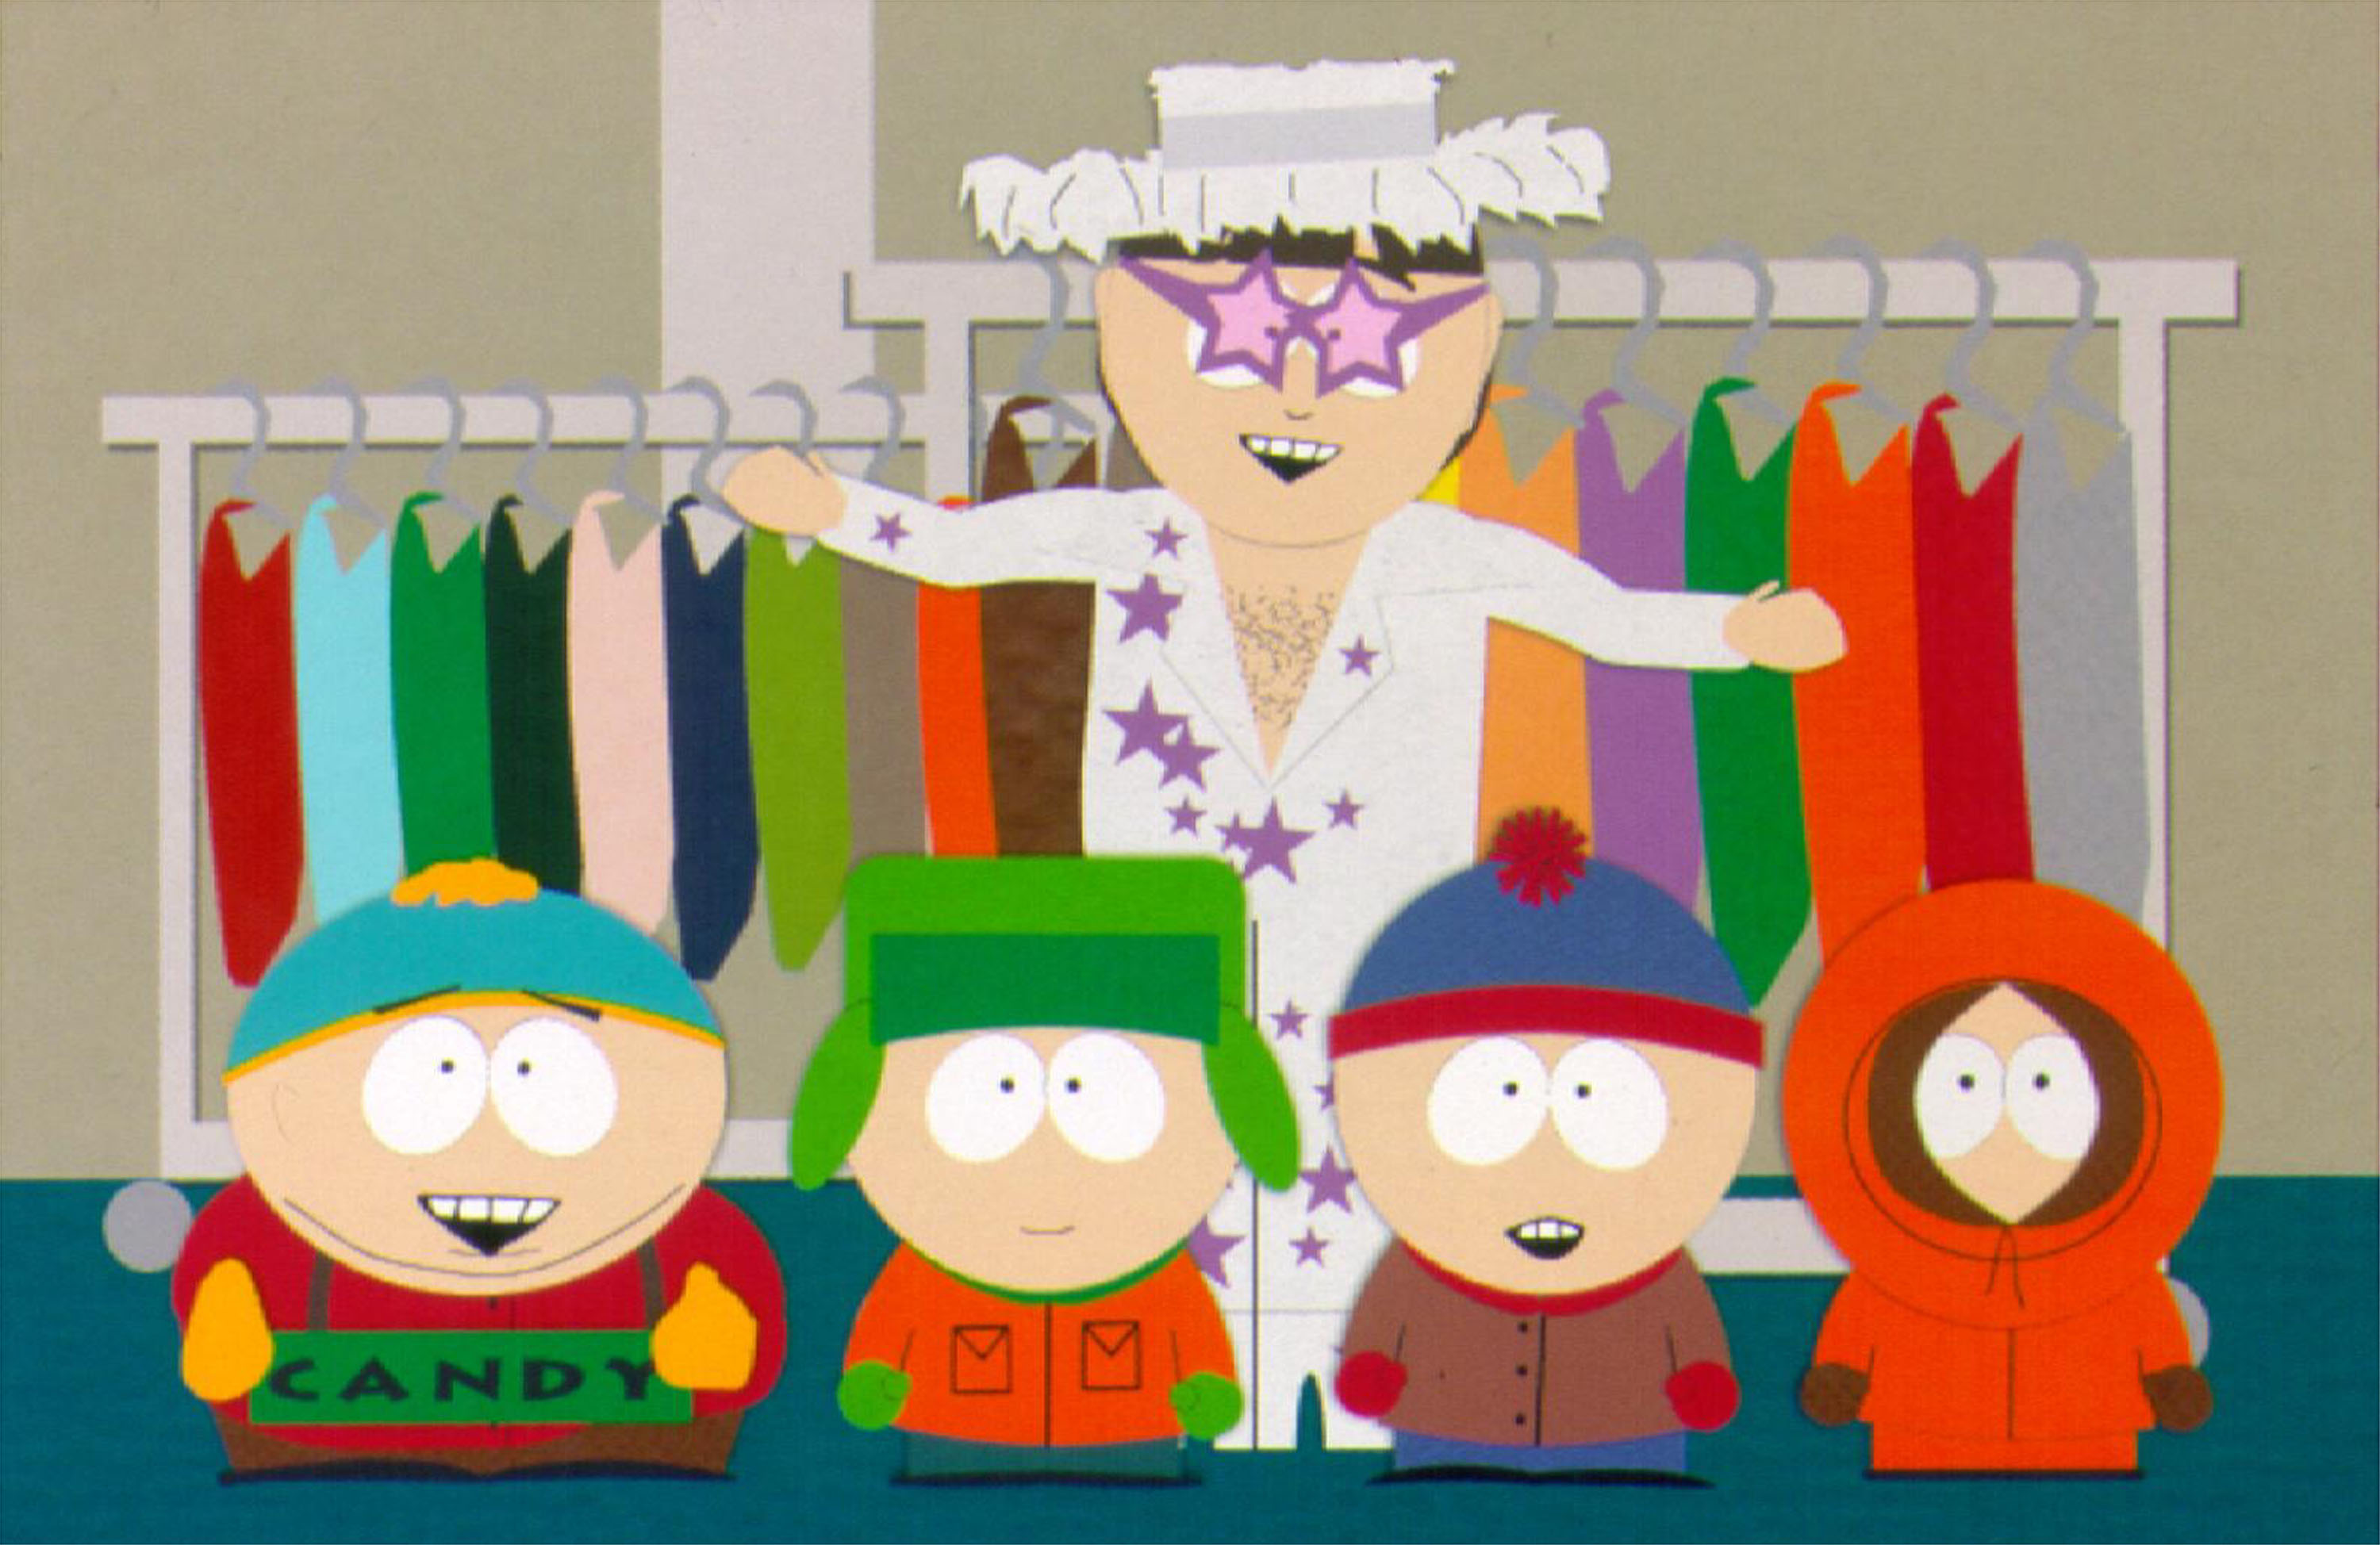 South Park Episode 'Band in China' Is Banned in China